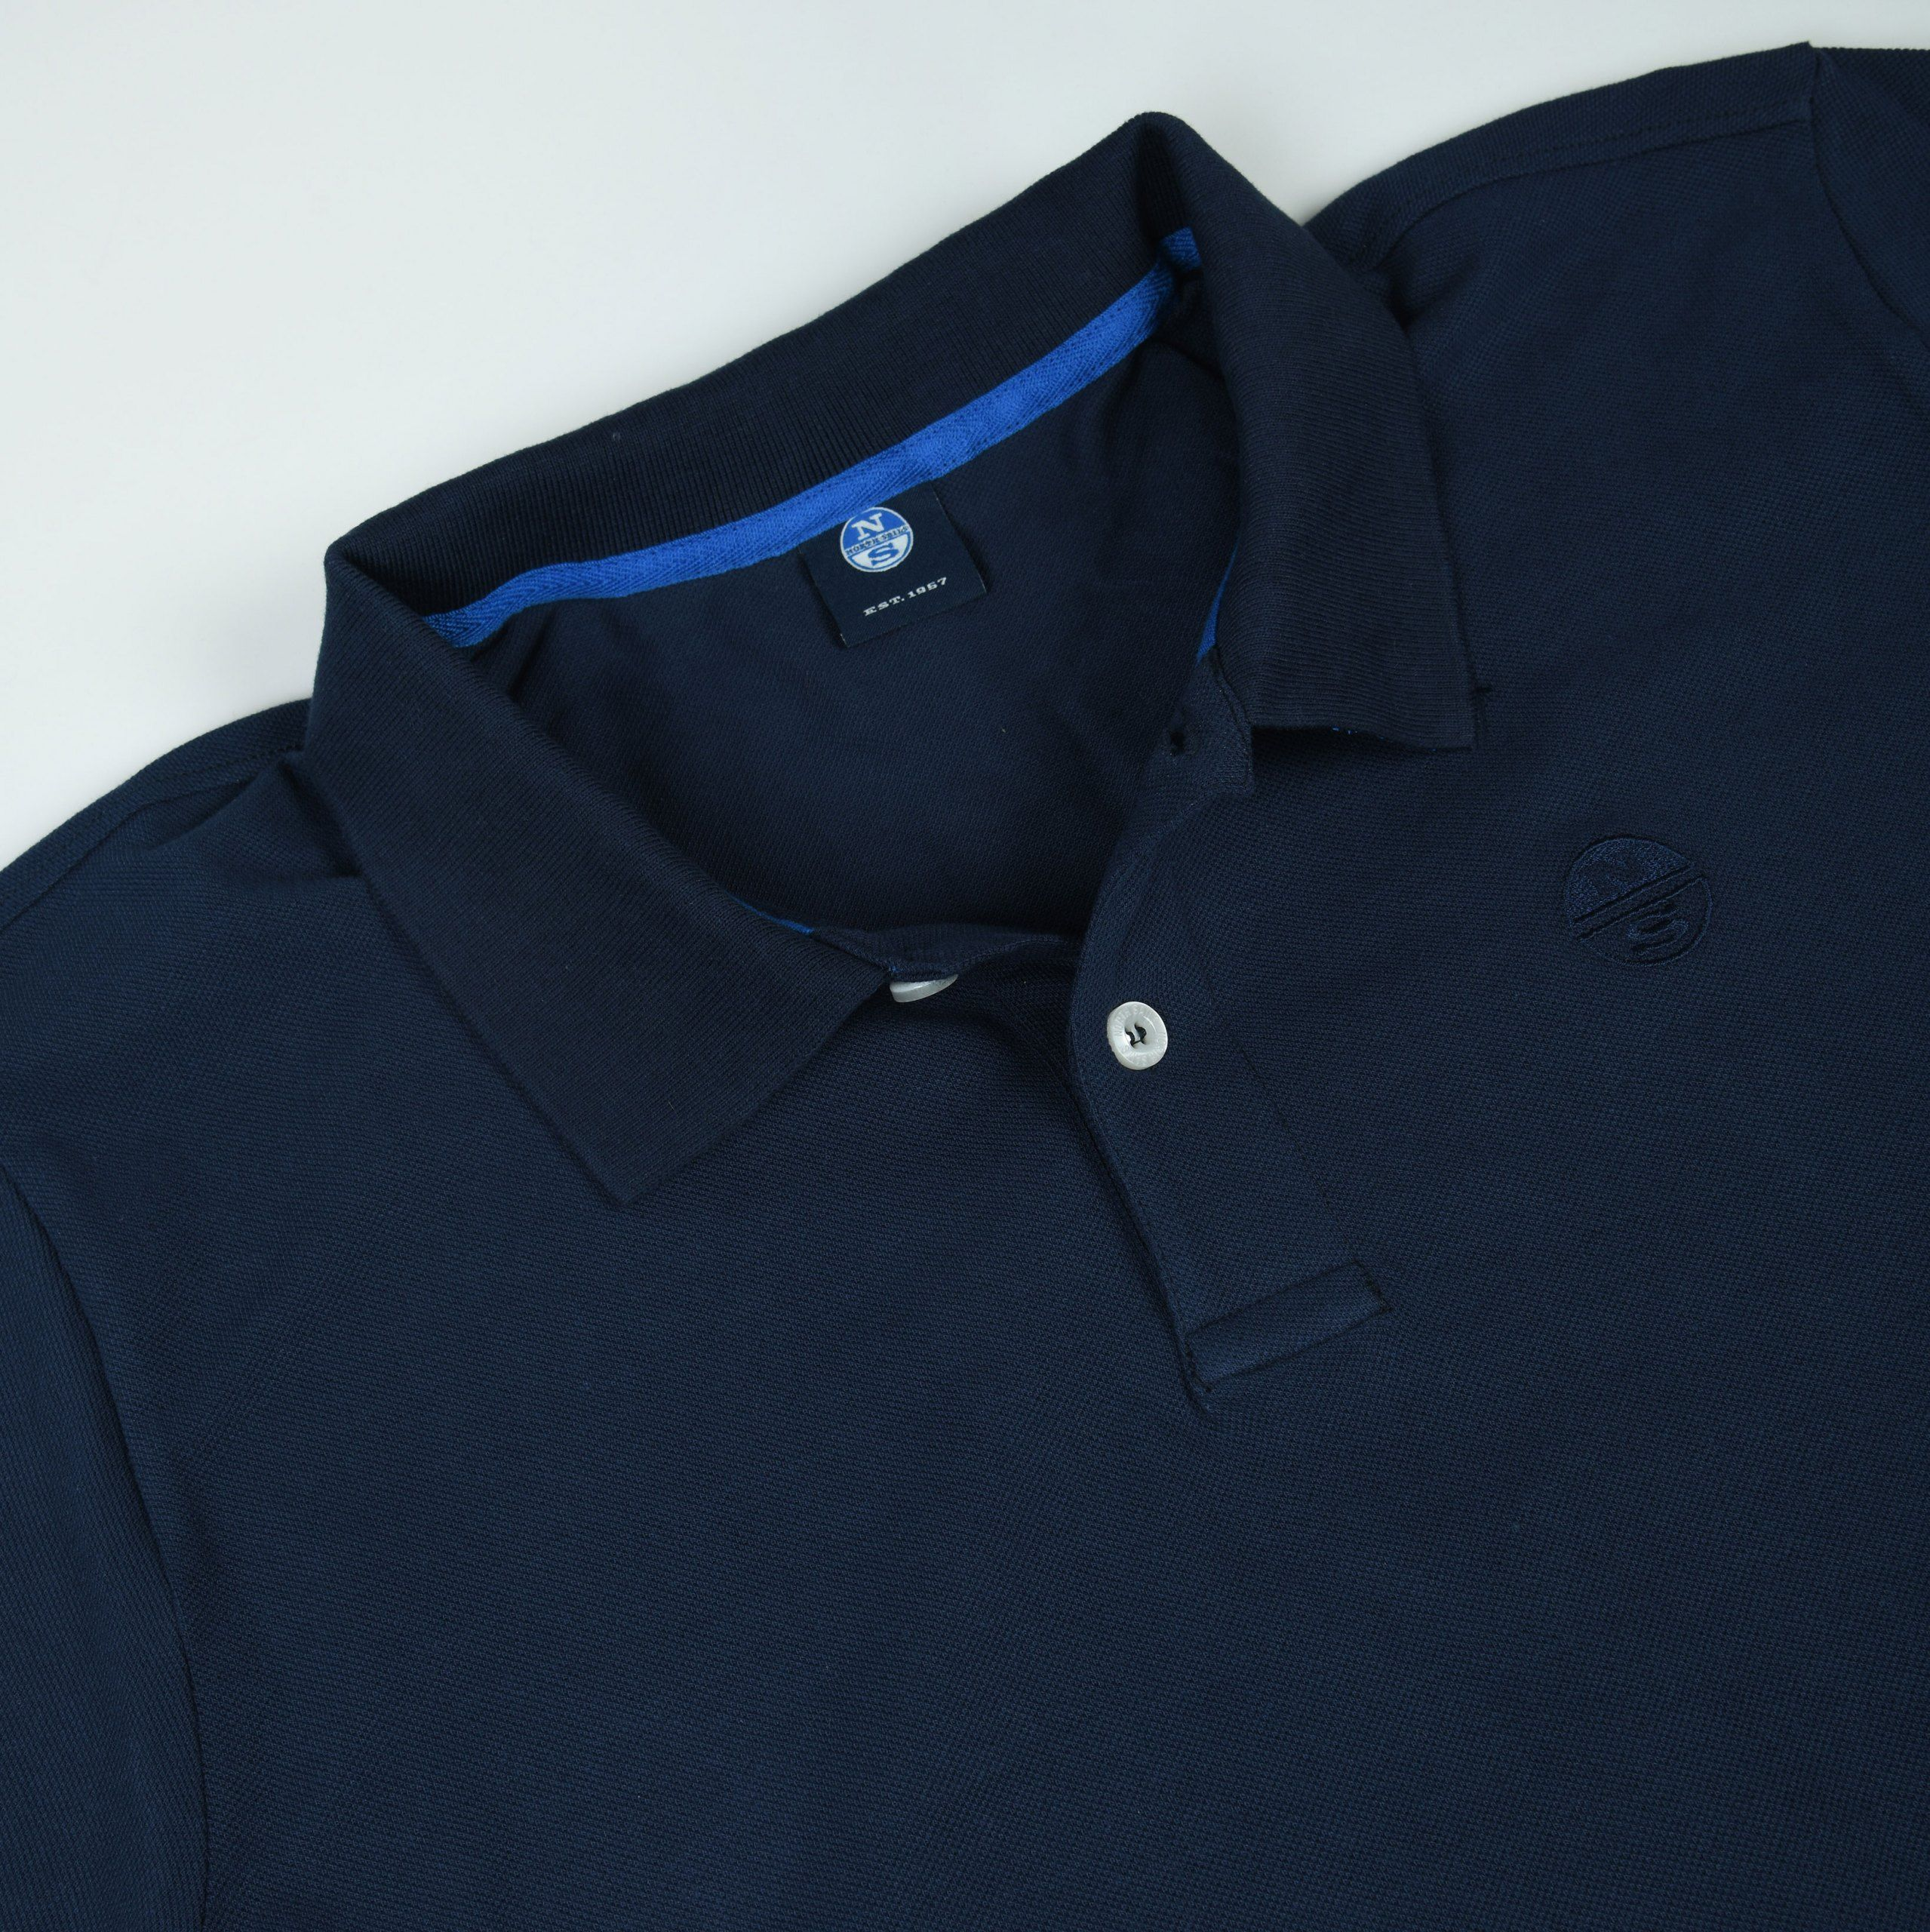 Poloshow North Sails Polo Navy Blue 6923280000802520 3